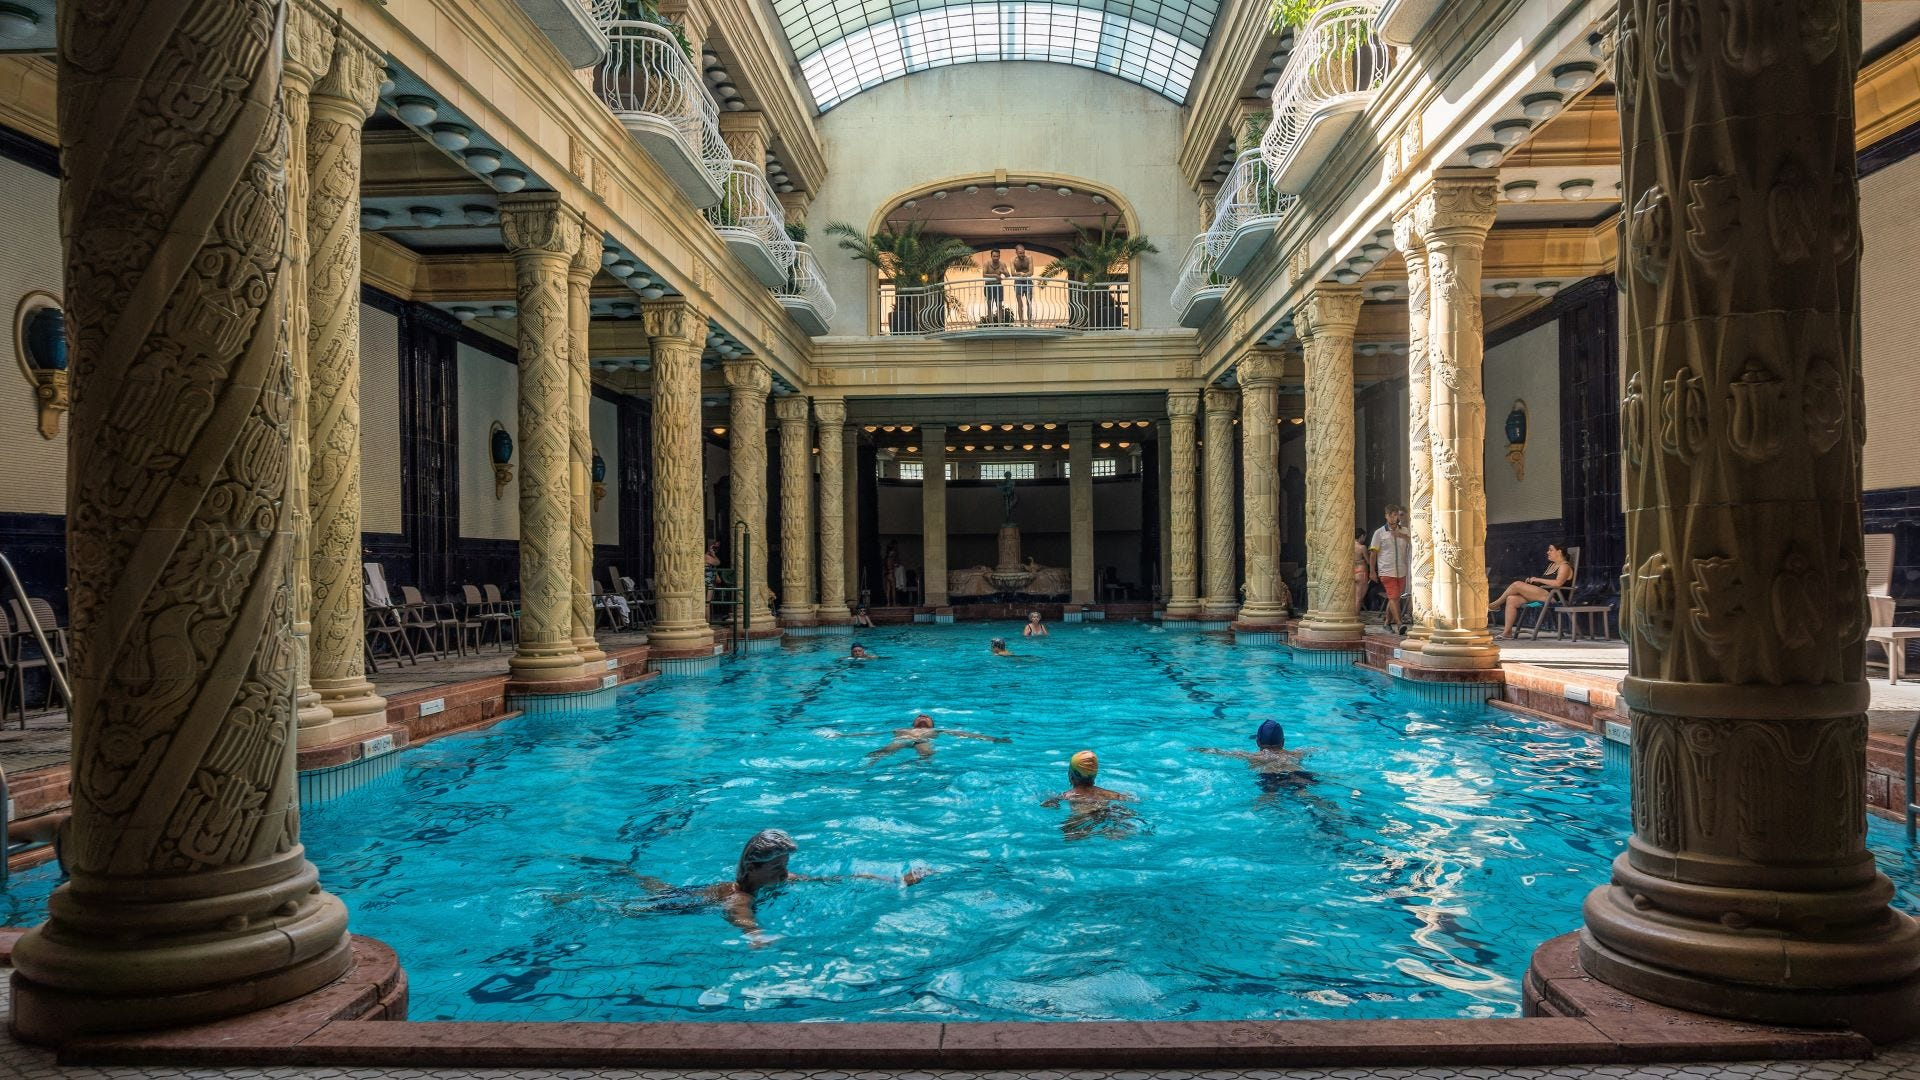 People in the St. Gellert Thermal Bath and Swimming Pool in Budapest.